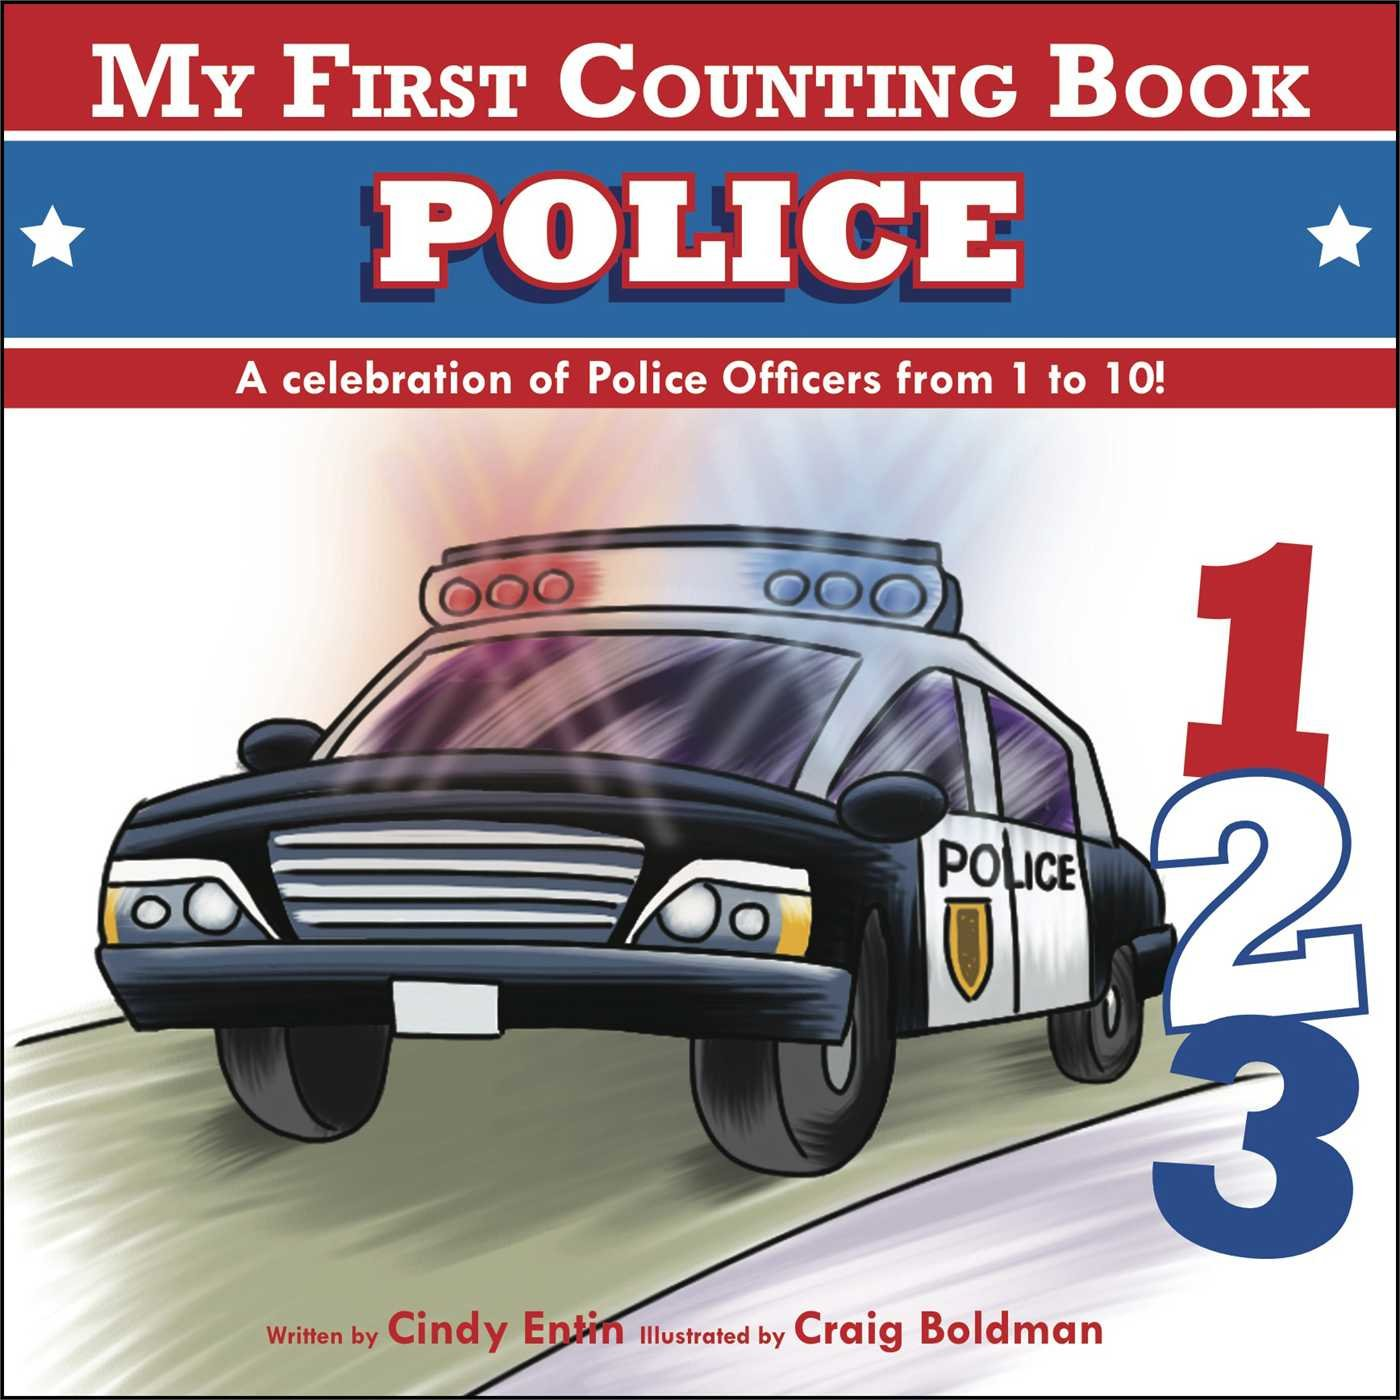 My First Counting Book: Police